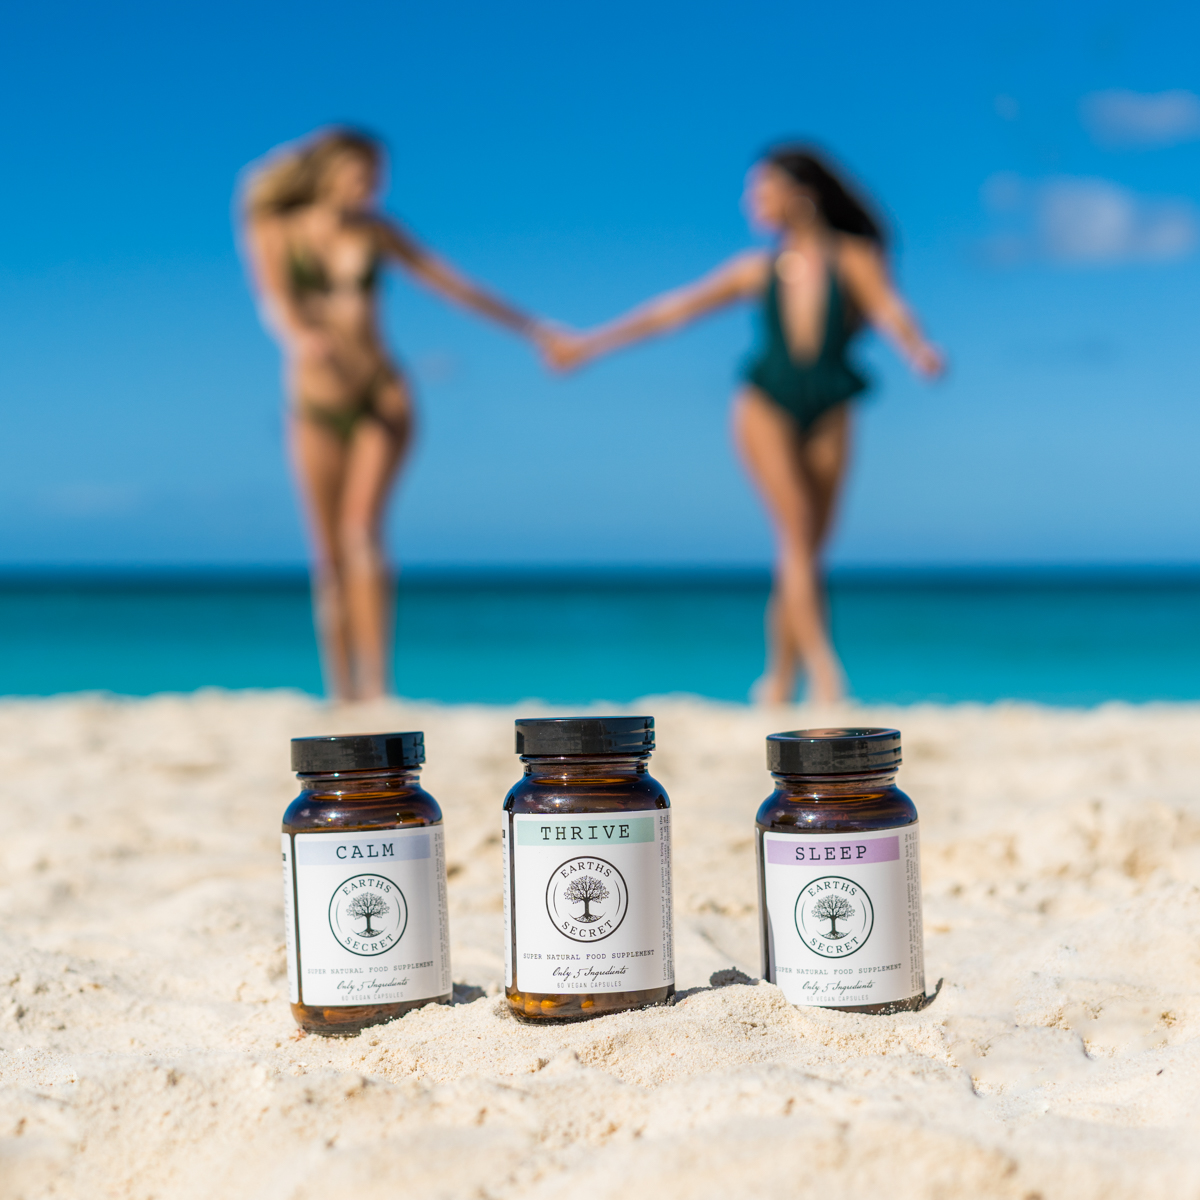 Earths Secret Products with two women holding hands on a beach